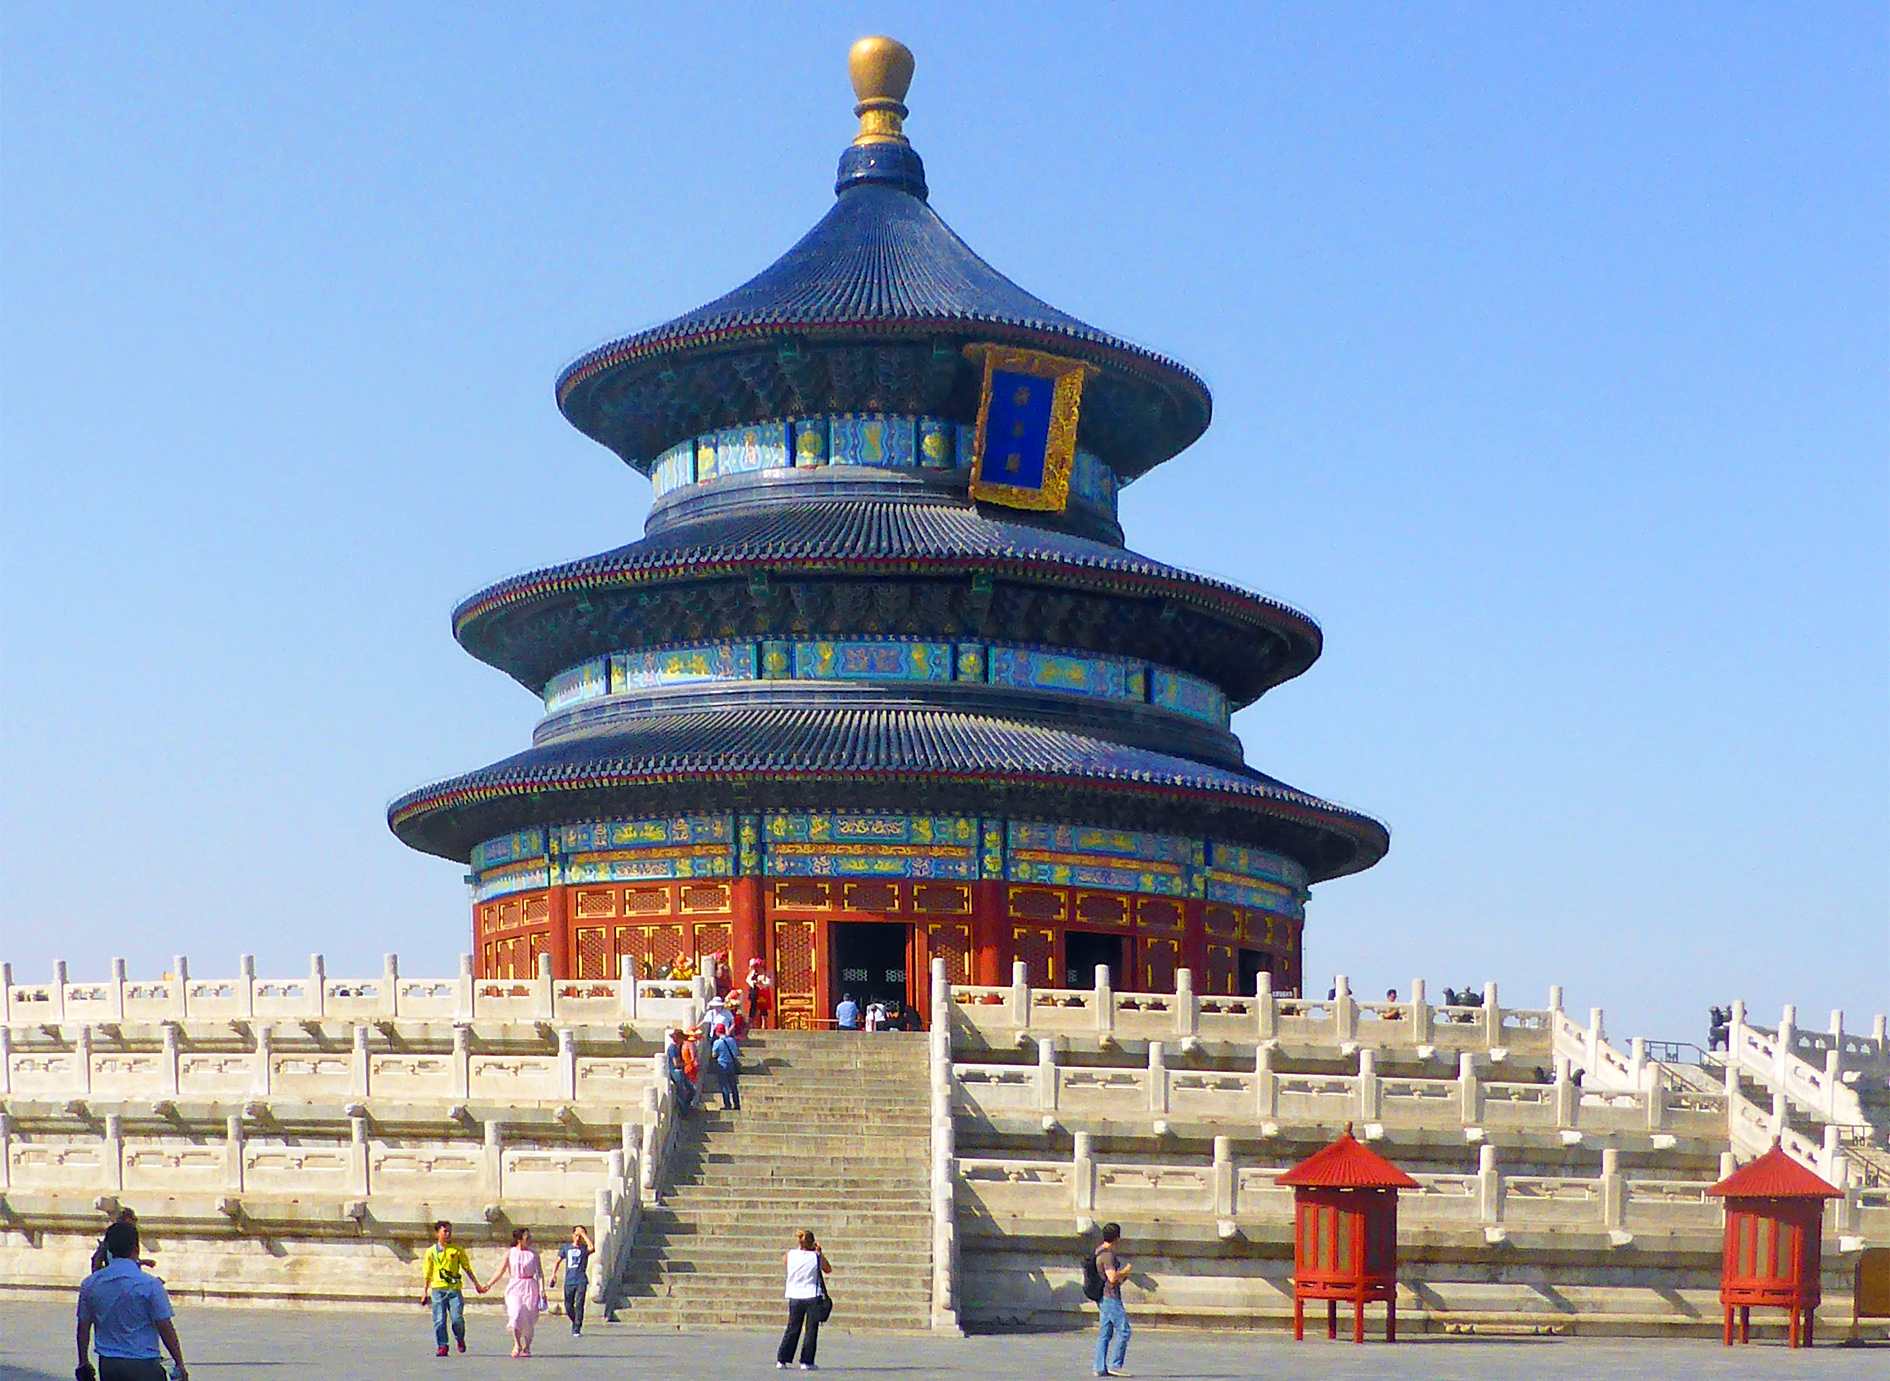 Temple of Heaven with blue tiles